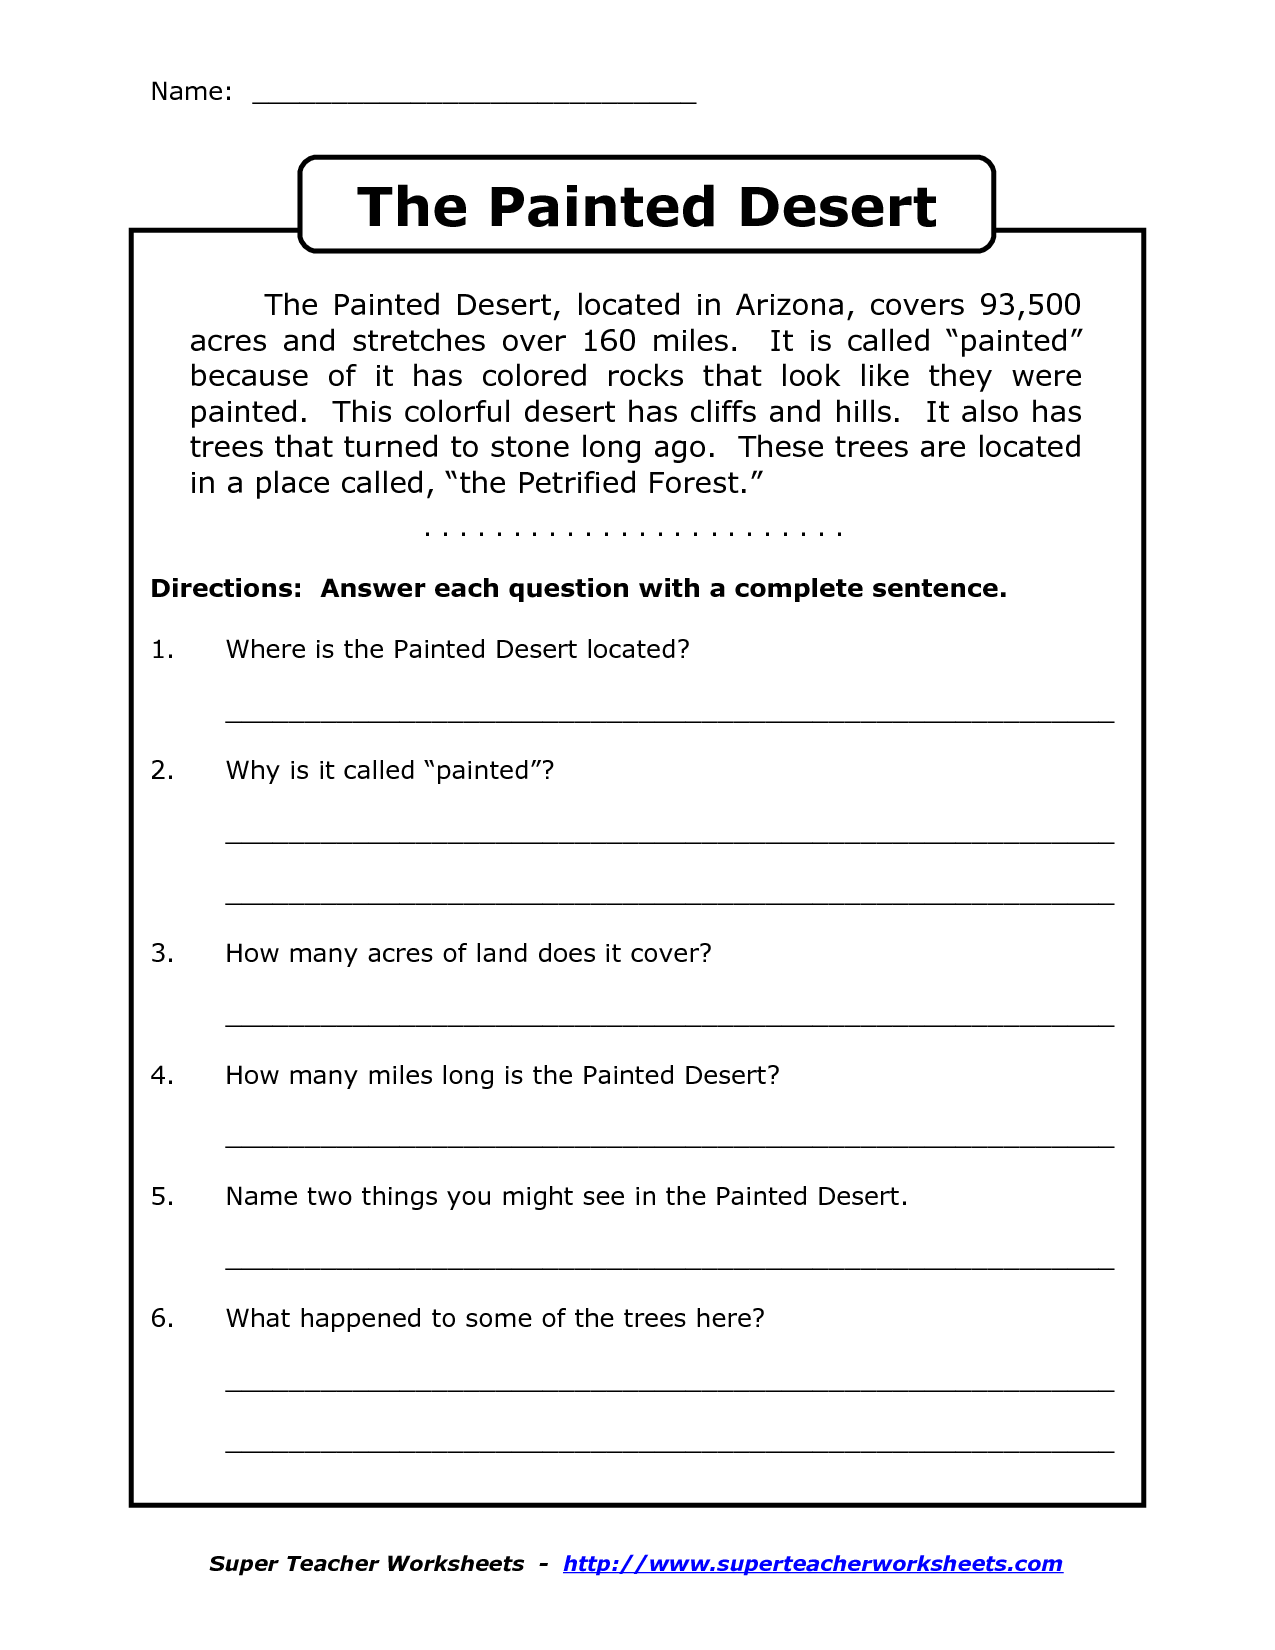 Worksheets Free 2nd Grade Comprehension Worksheets reading worksheets for 4th grade comprehension 3 name the painted desert